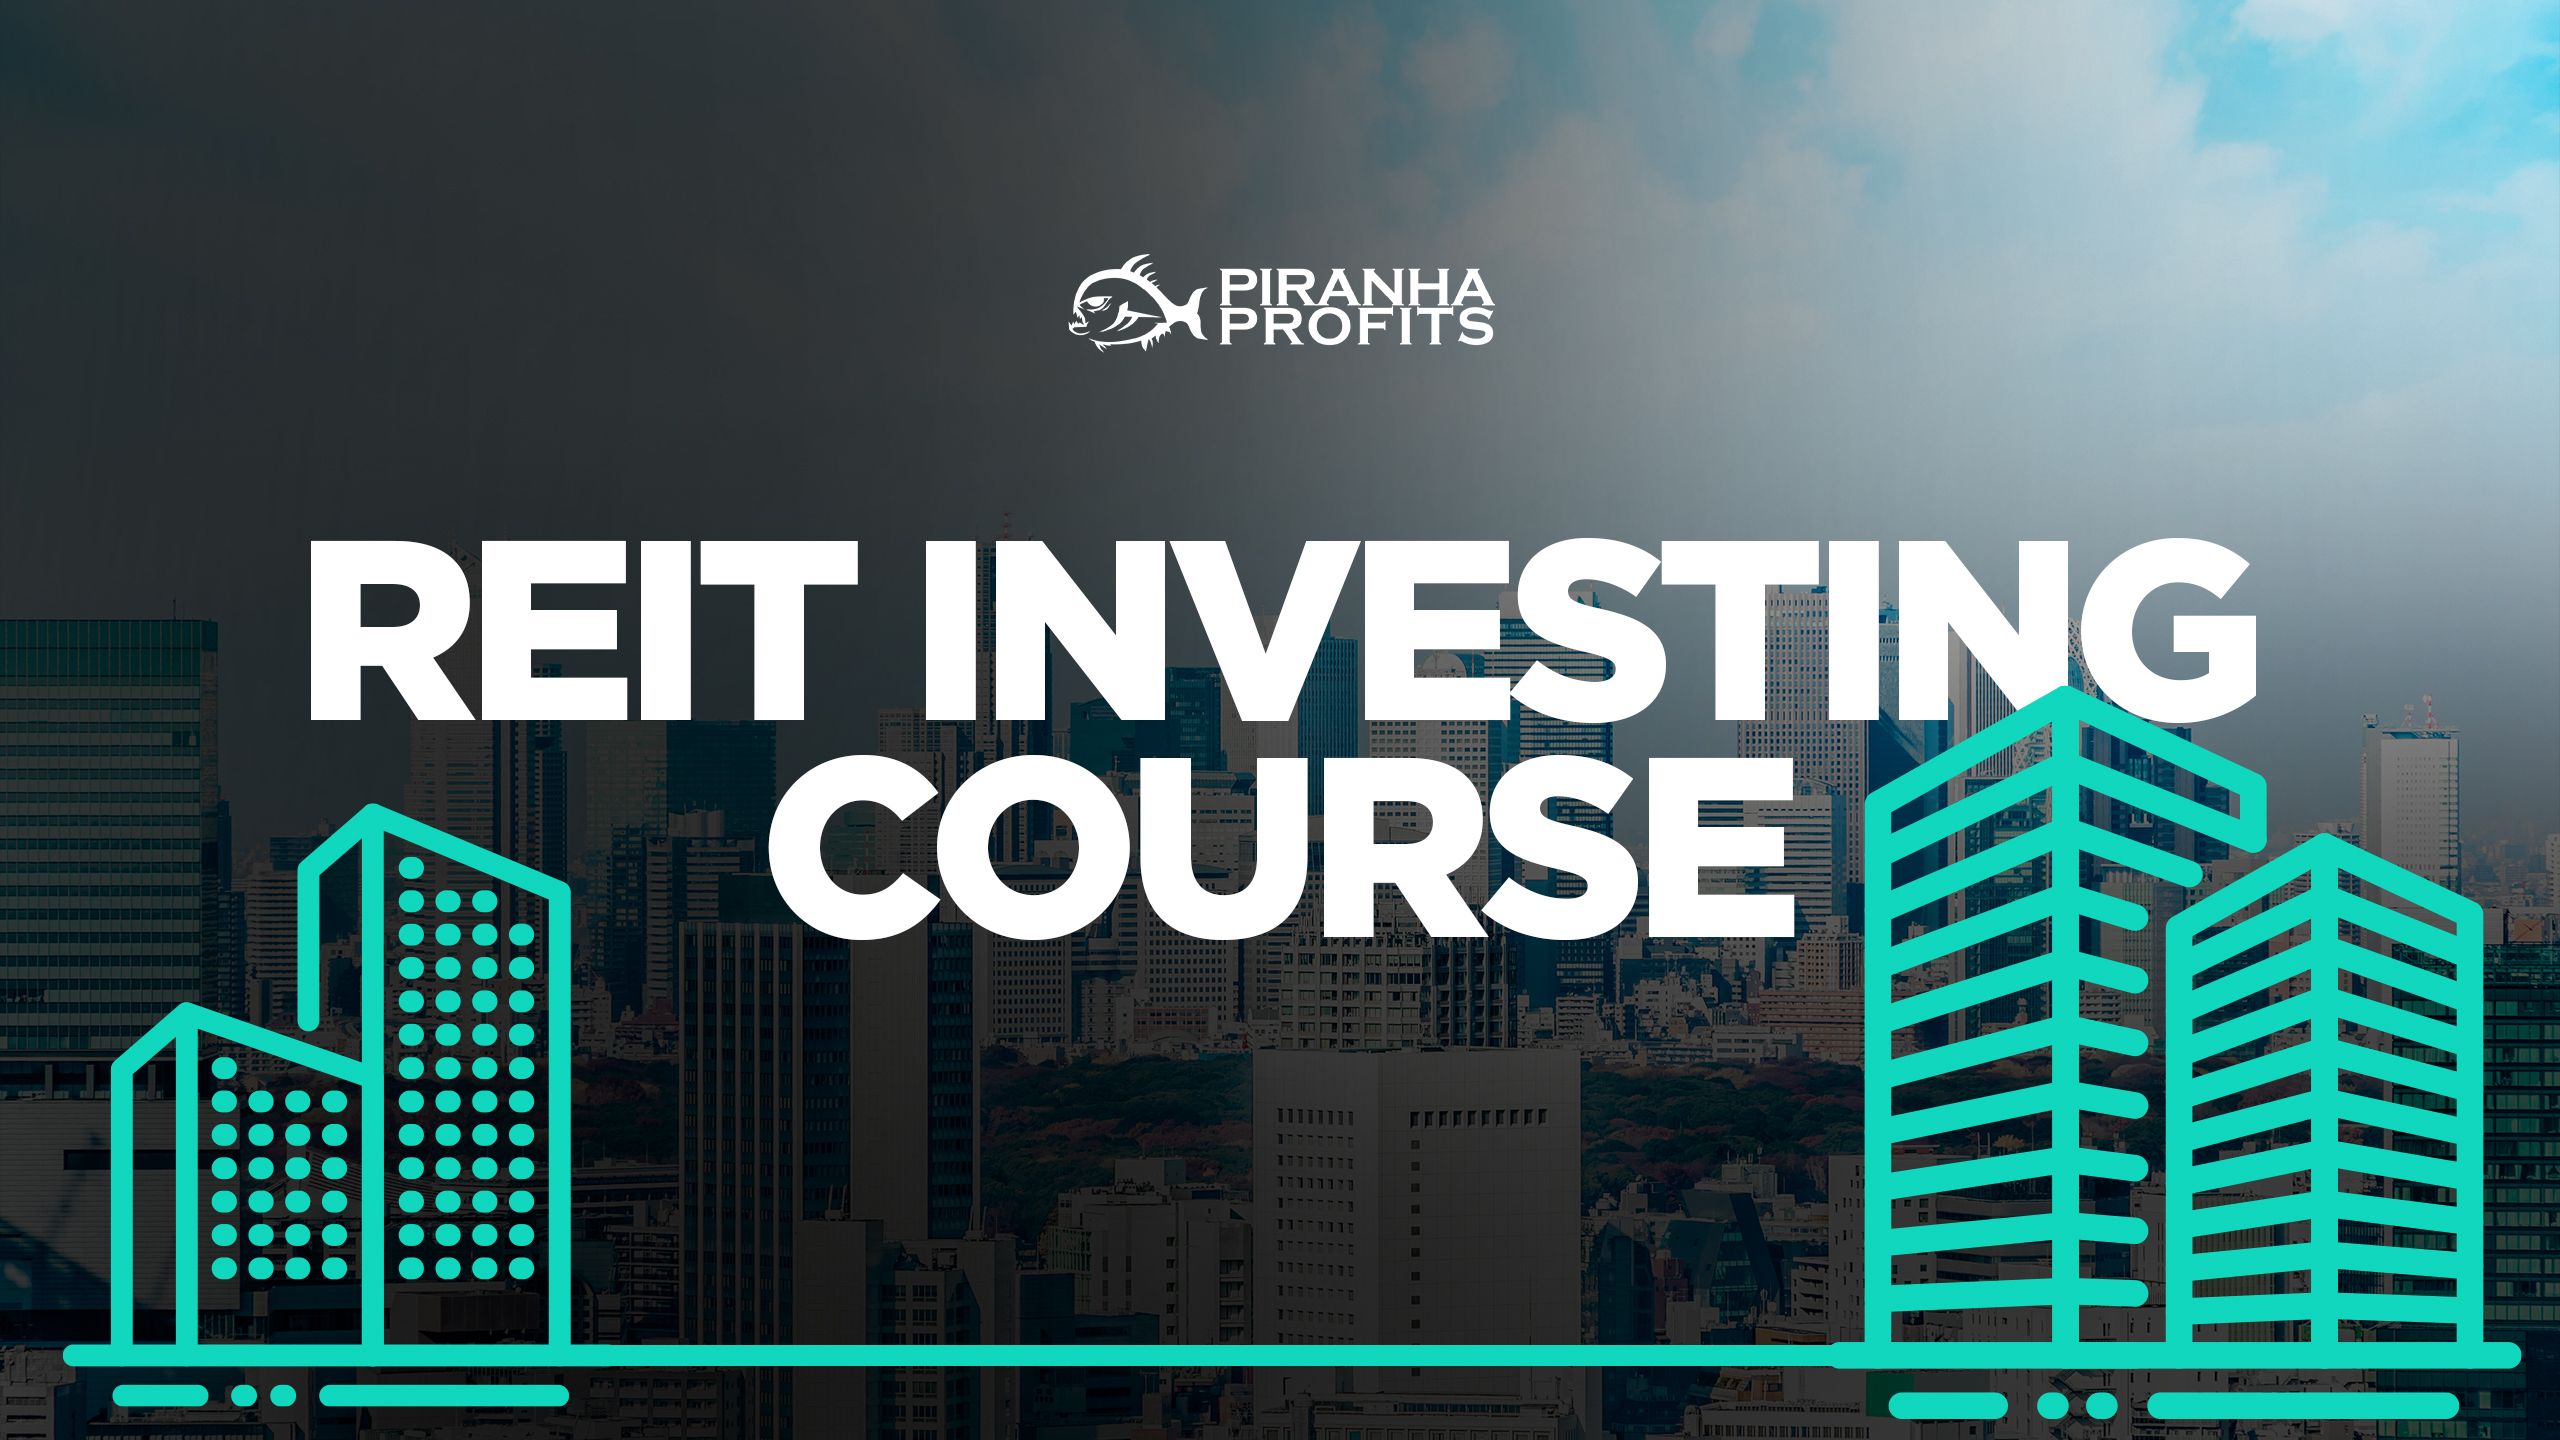 REIT investing course banner